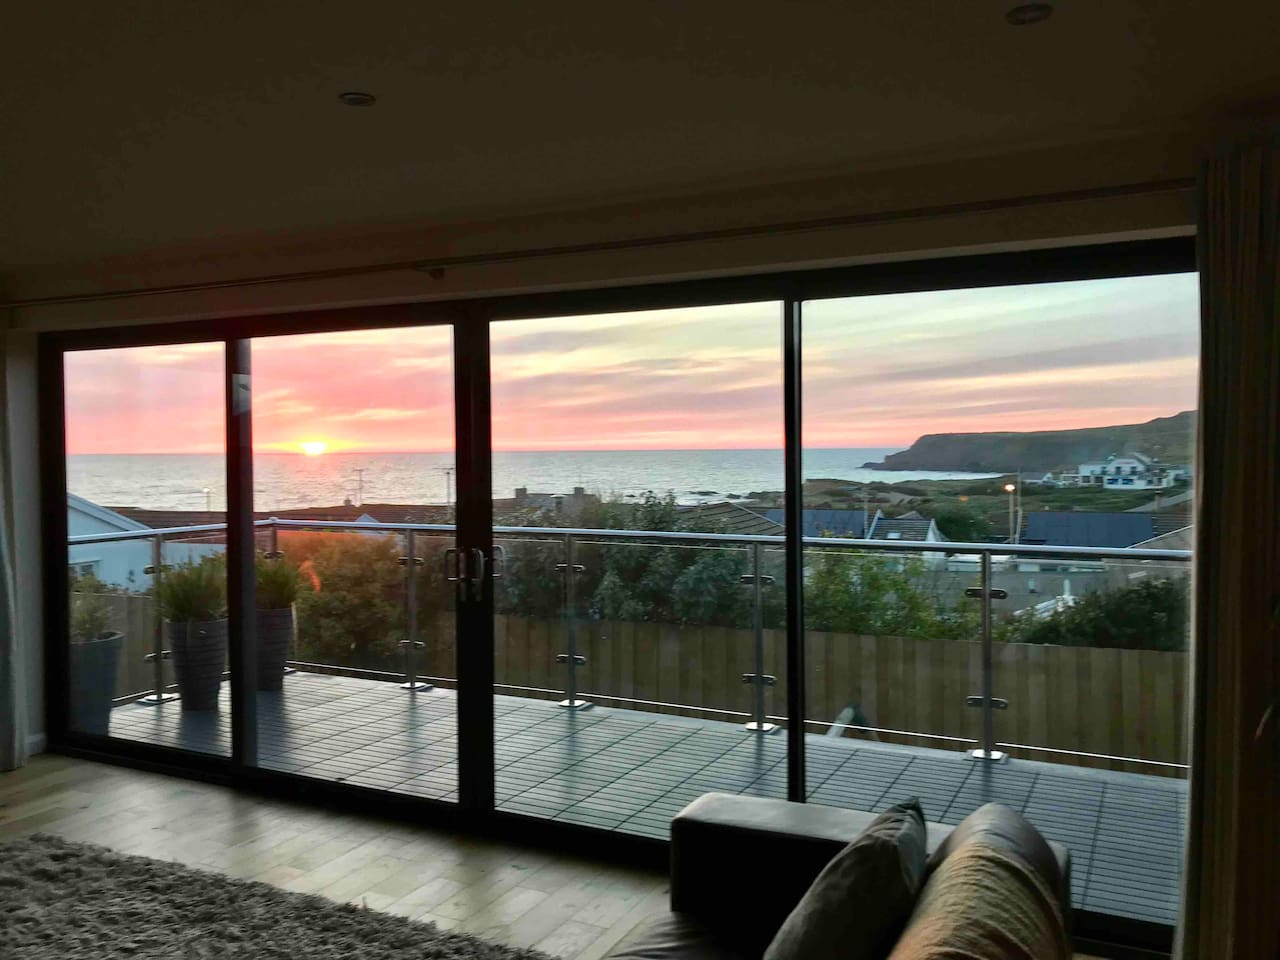 Baywatch Widemouth Bay - Take in the sunset views of an evening from the sofa